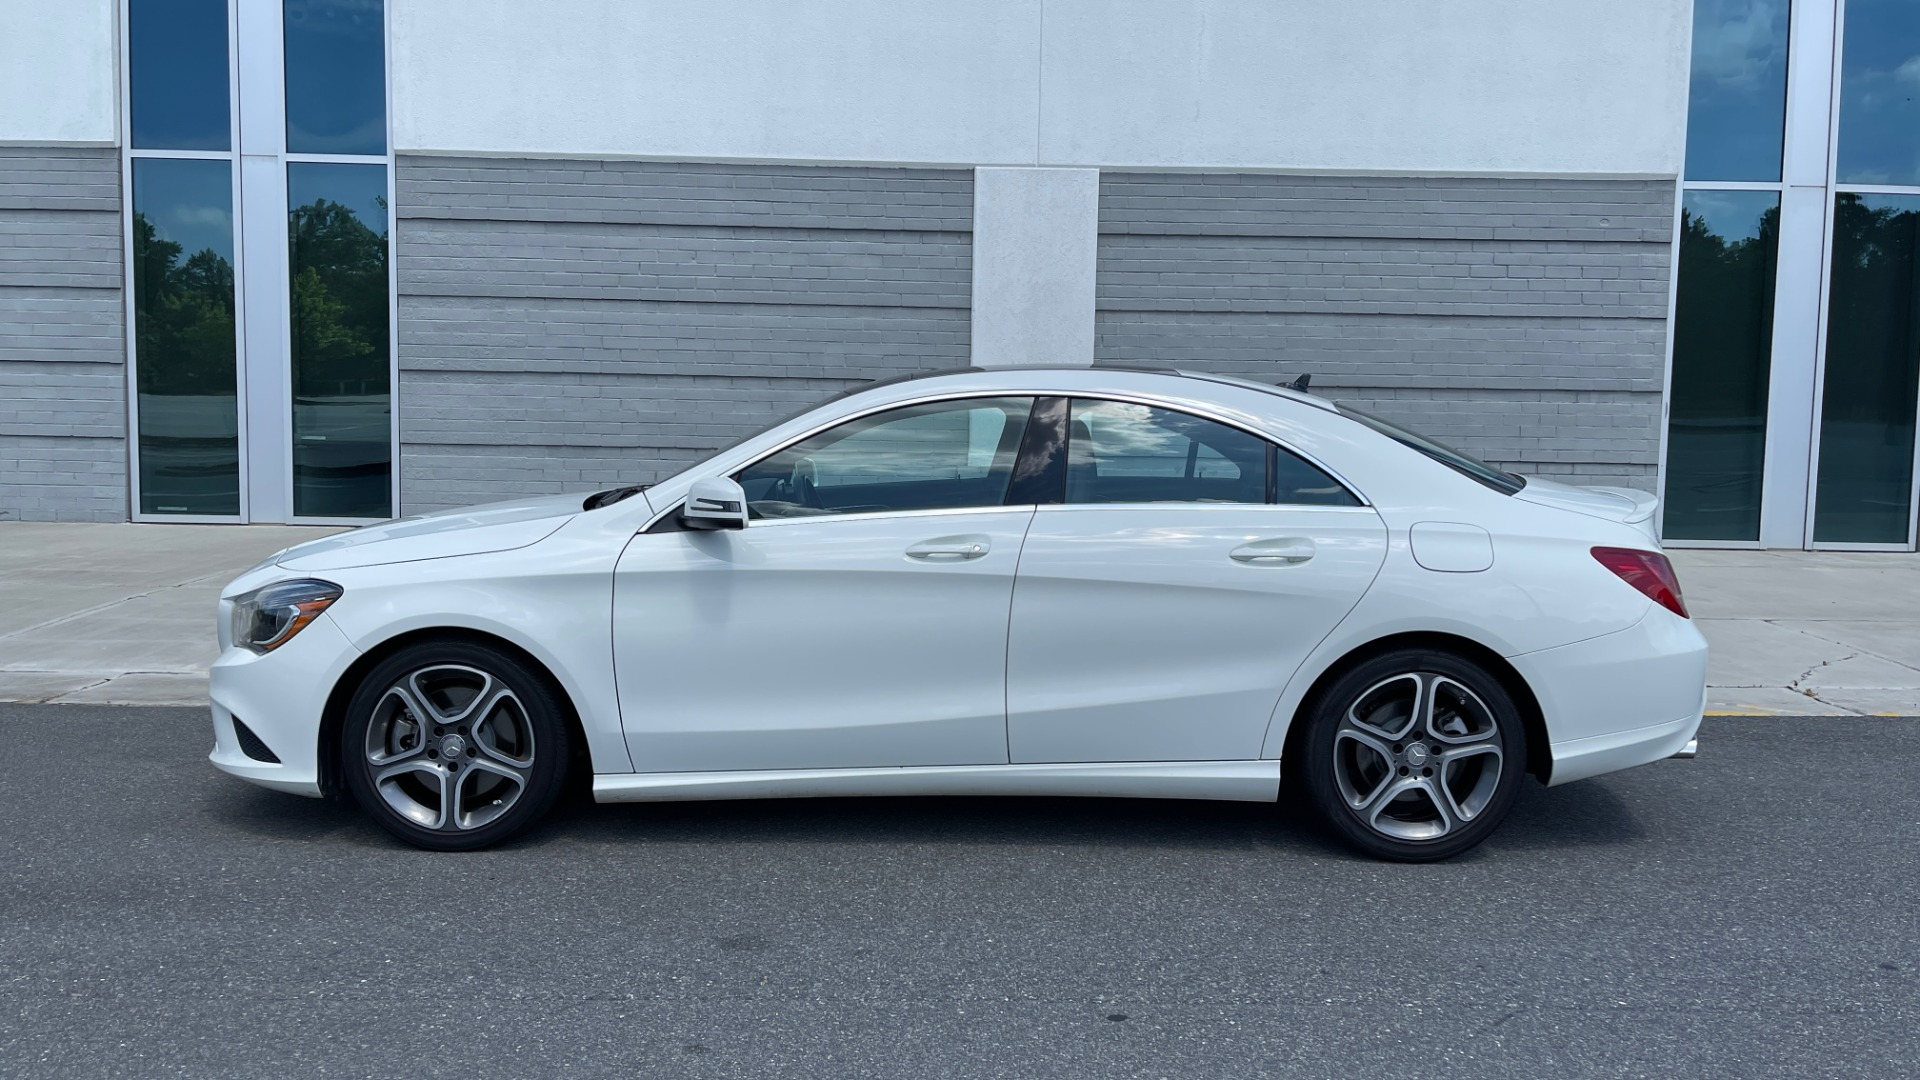 Used 2014 Mercedes-Benz CLA-Class 250 PREMIUM / NAV / MULTIMEDIA PKG / PANO-ROOF / REARVIEW for sale $19,495 at Formula Imports in Charlotte NC 28227 4